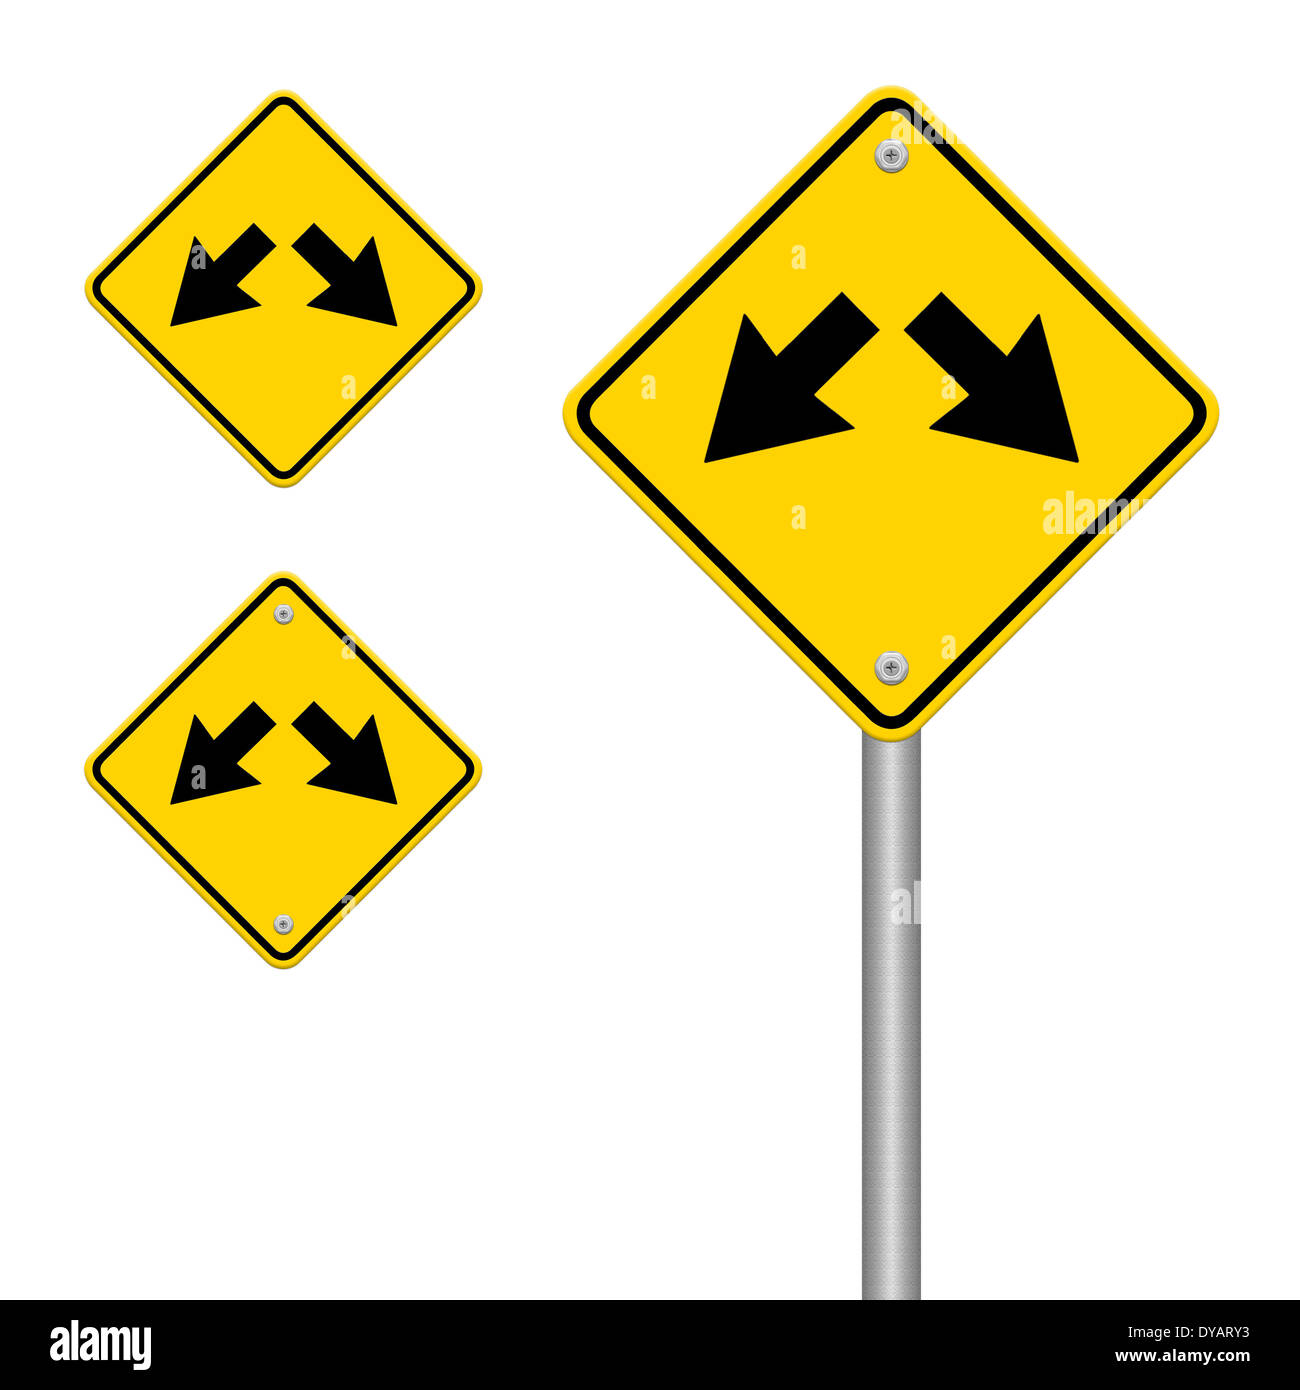 Road Signs Yellow series - Stock Image